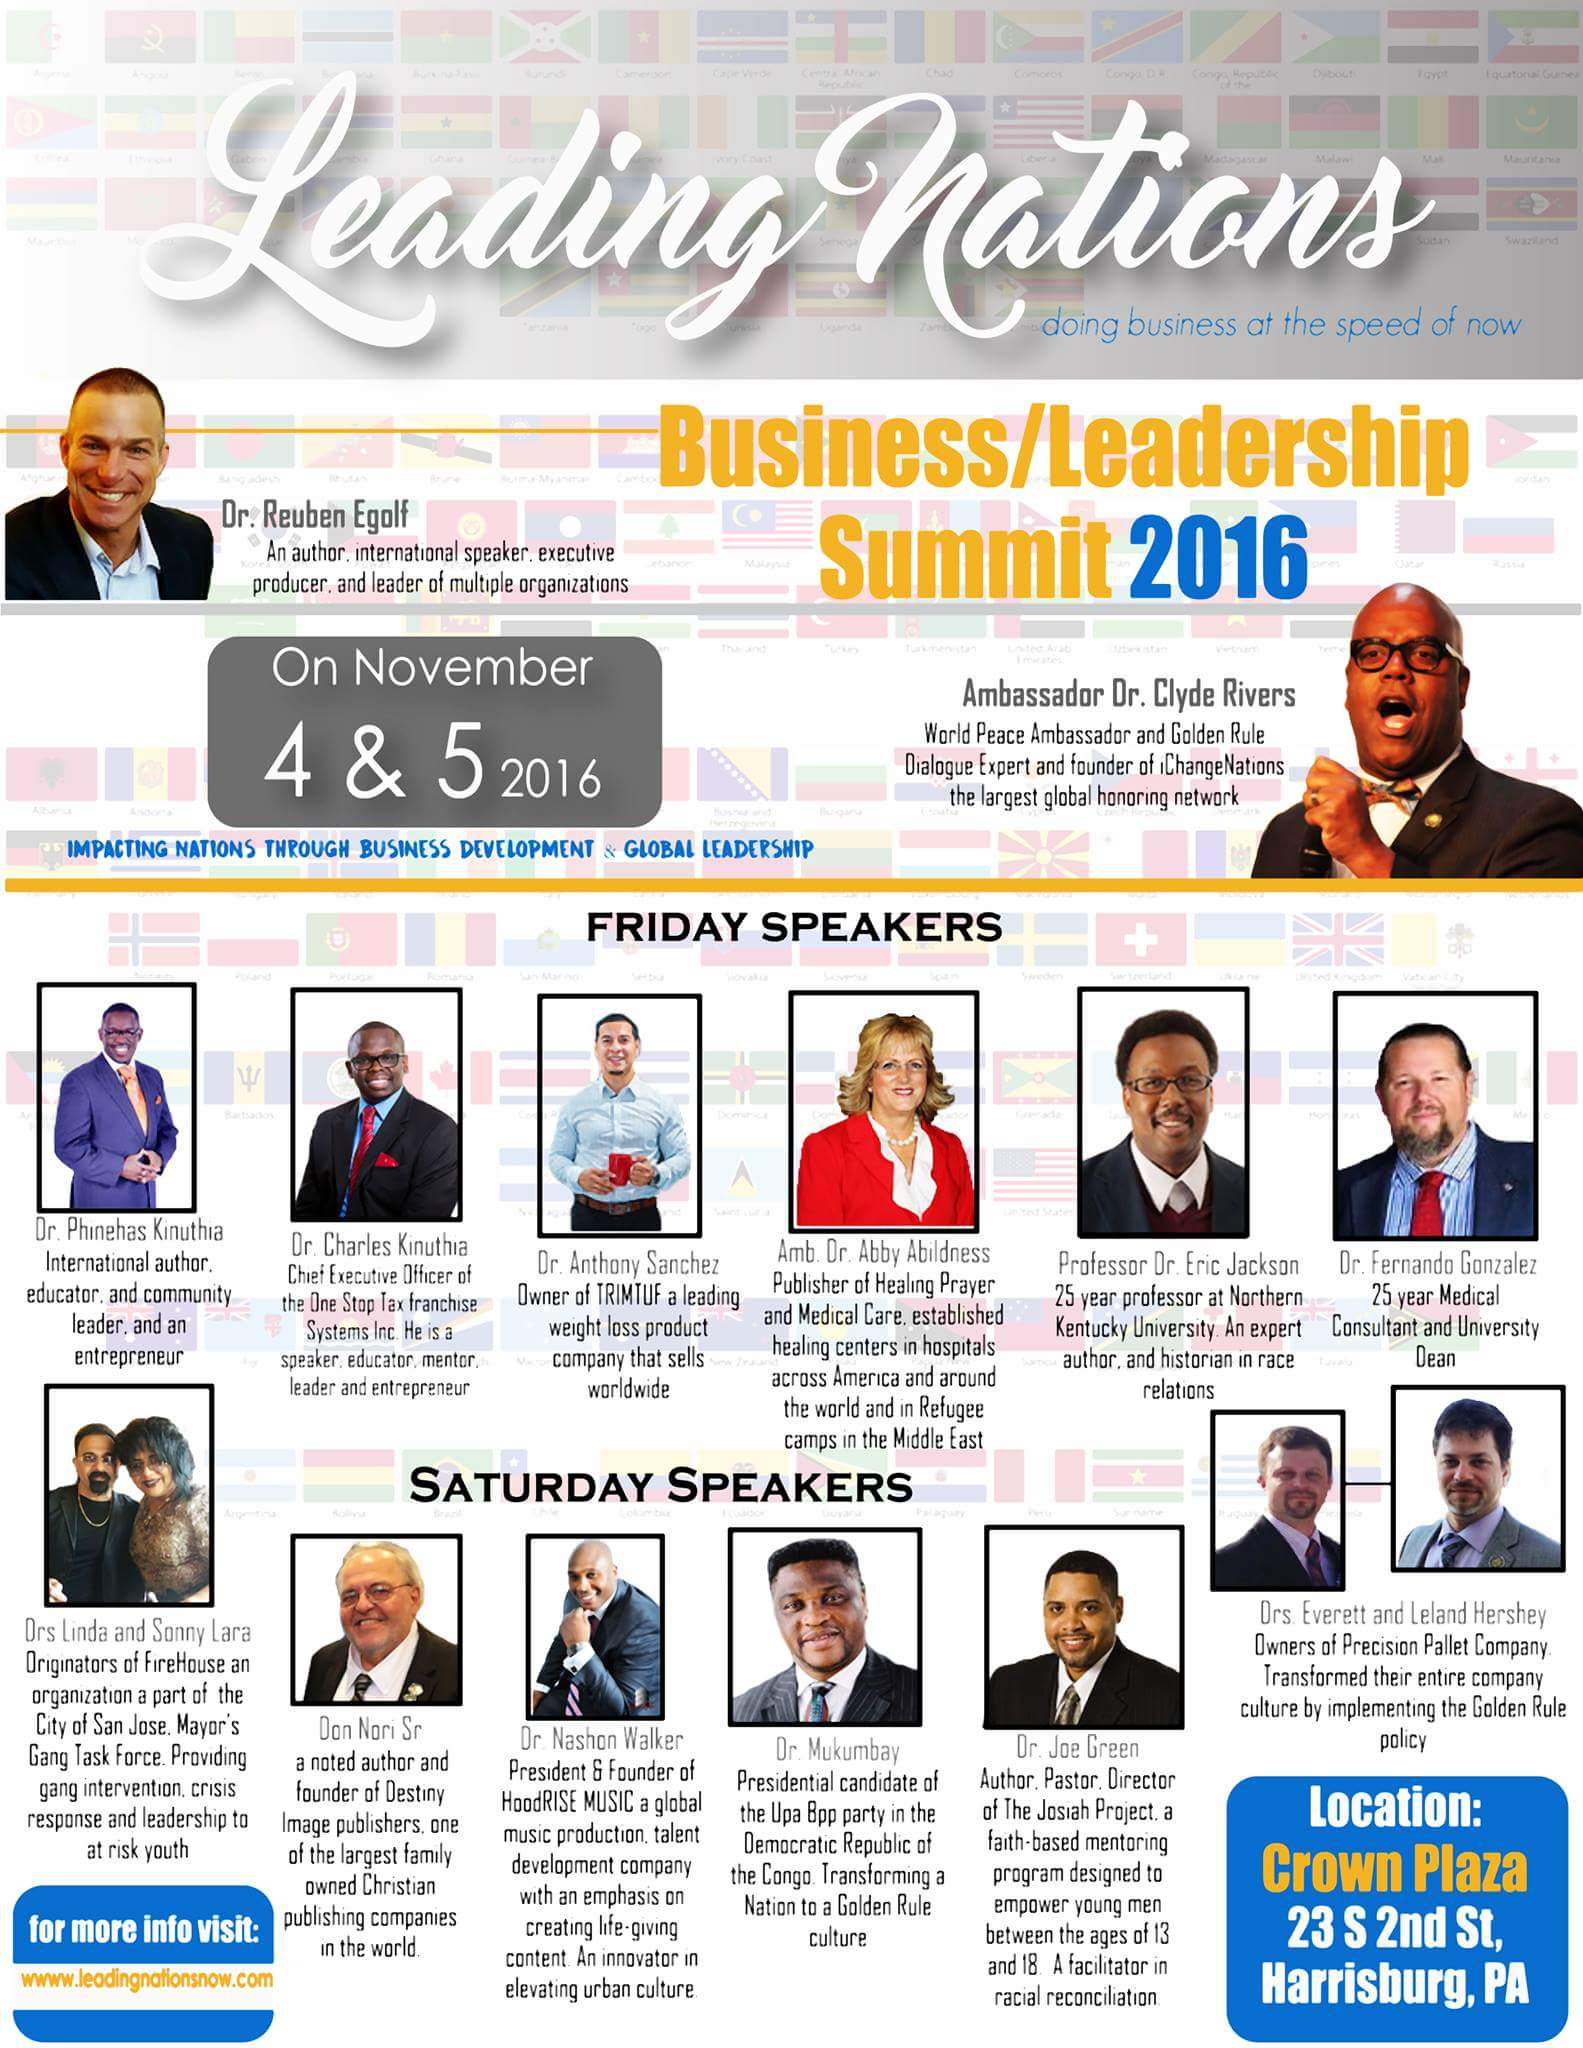 Speakers for the Business Leadership Summit